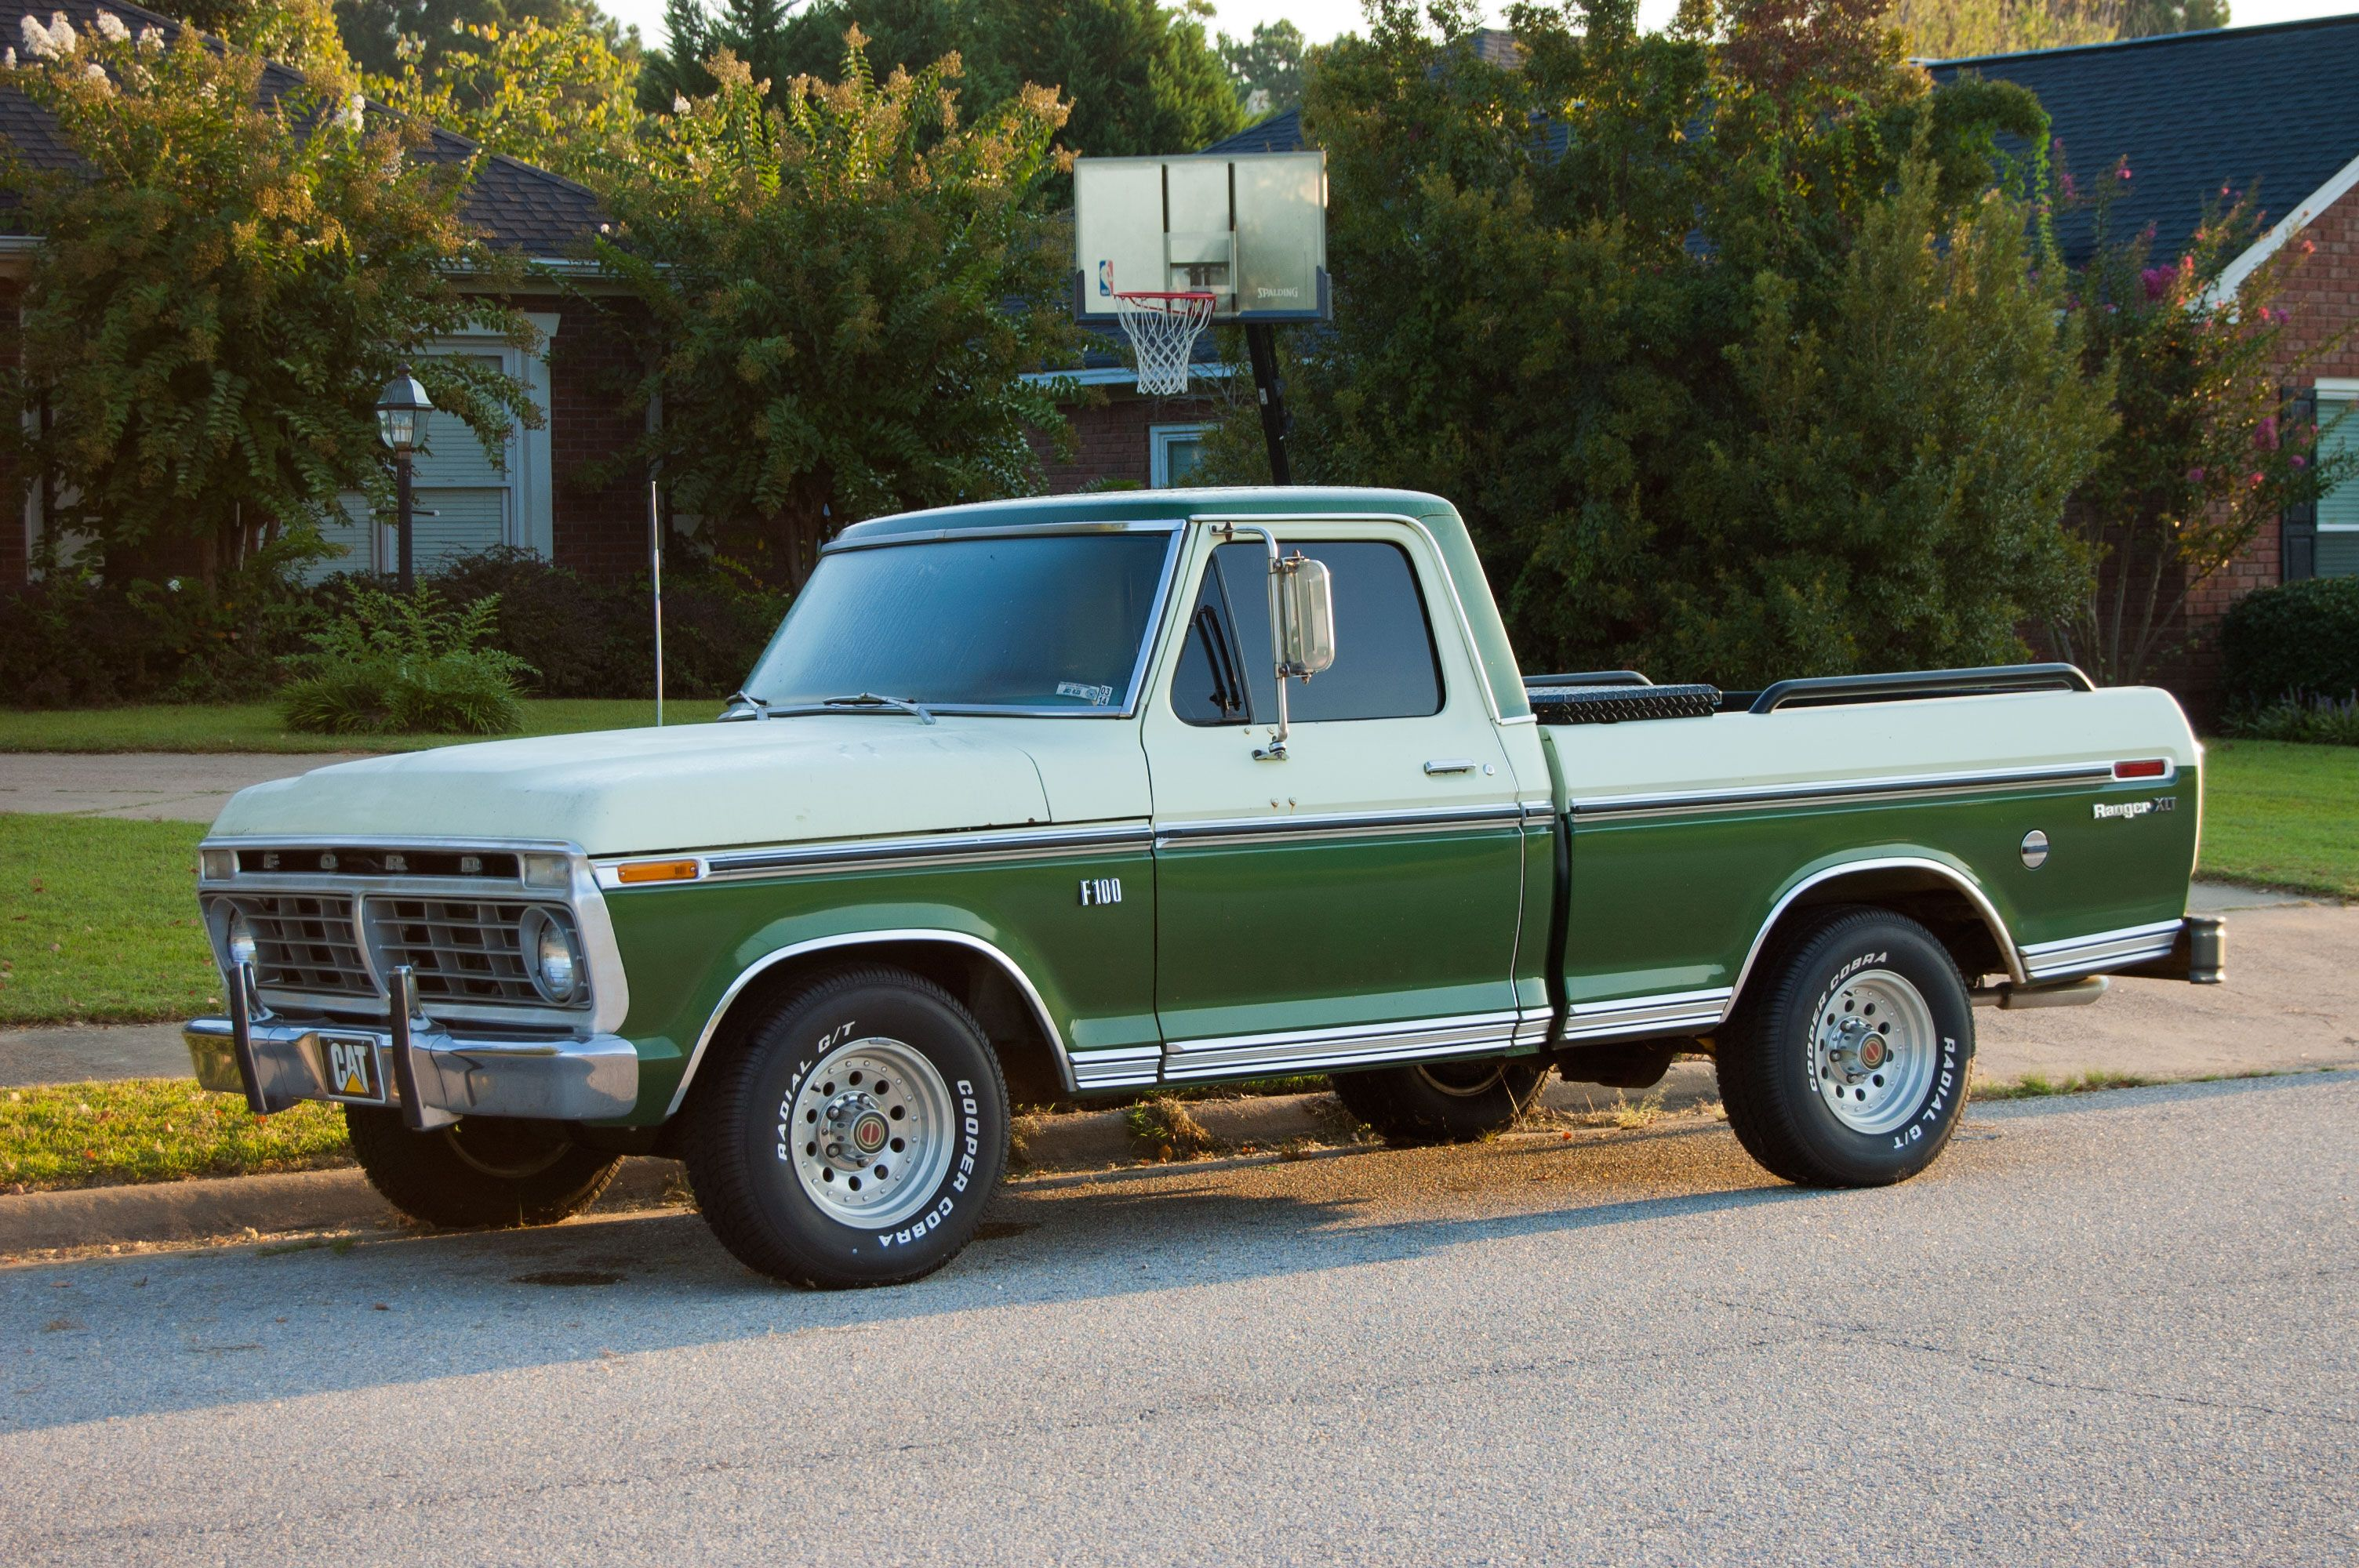 A Two Tone Cream Over Green F100 Xlt That Never Moves Since 1970 Ford Ranger Appearing Last